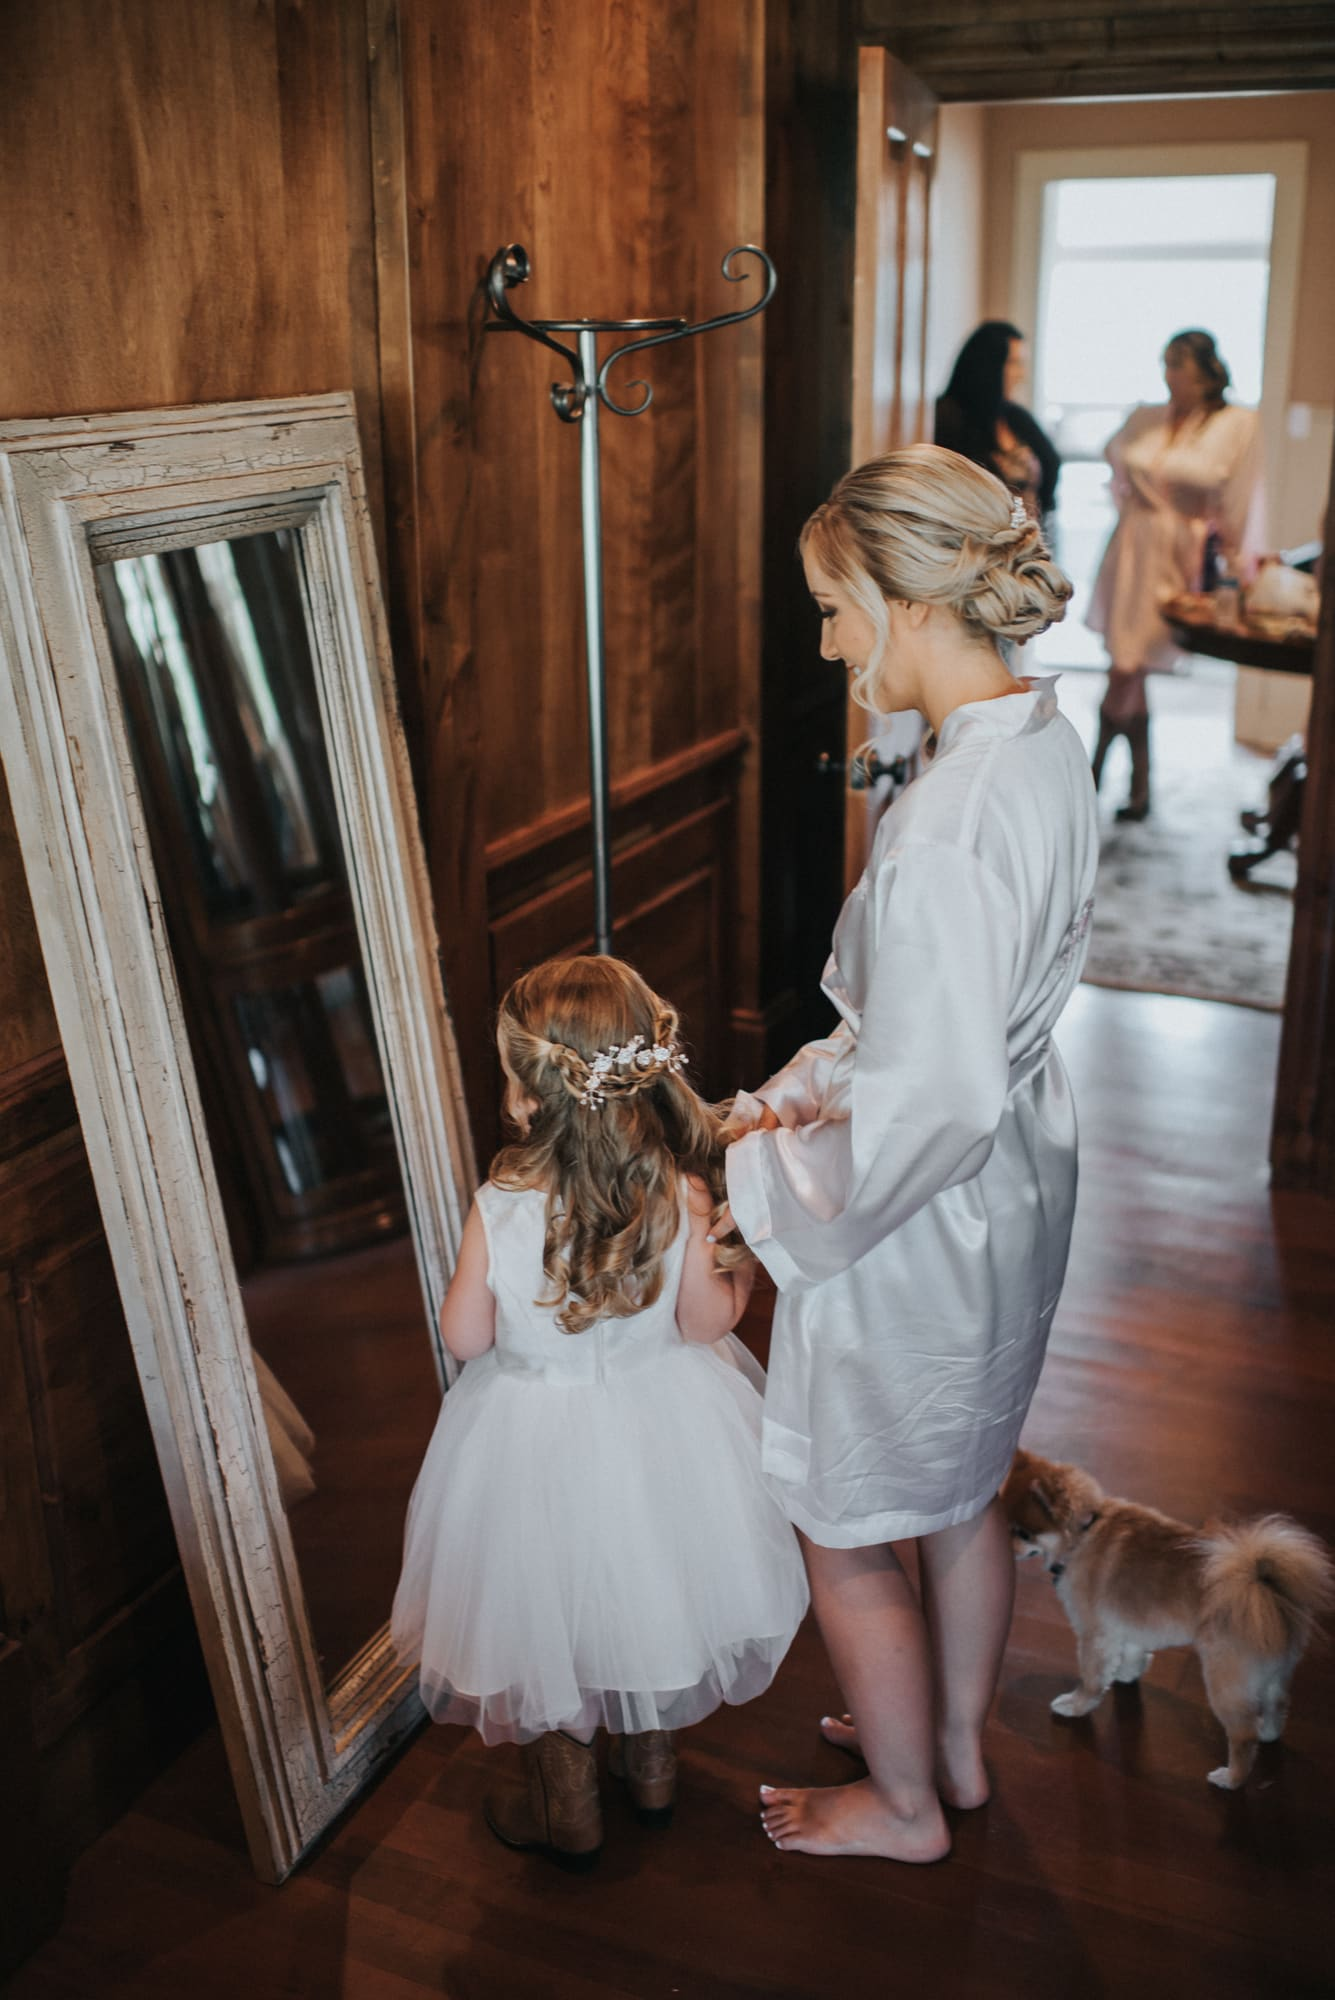 bride and flower girl getting ready together for wedding